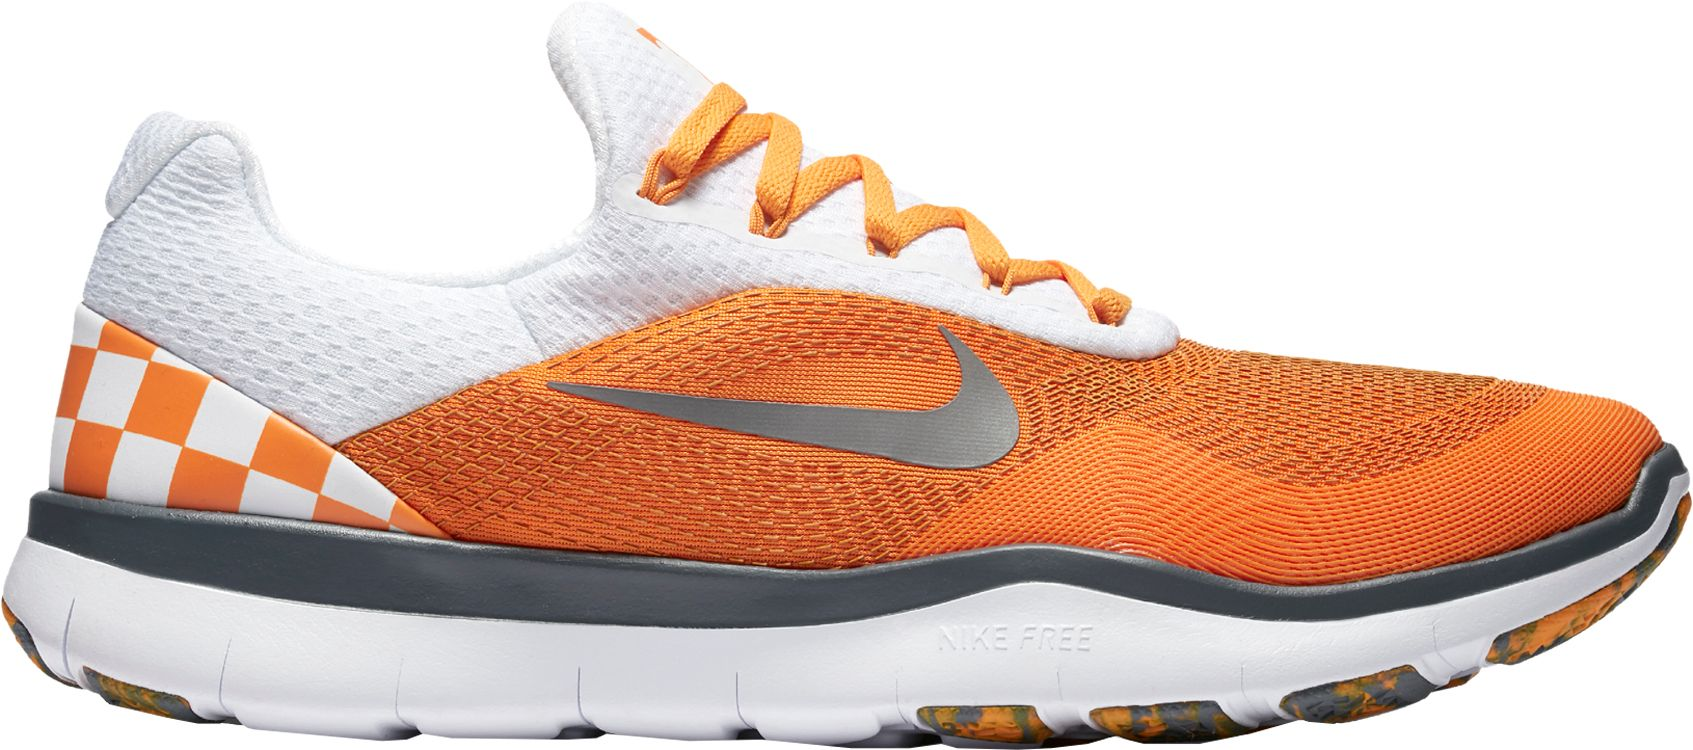 Nike Men's Free Trainer V7 Week Zero Tennessee Edition Training Shoes |  DICK'S Sporting Goods